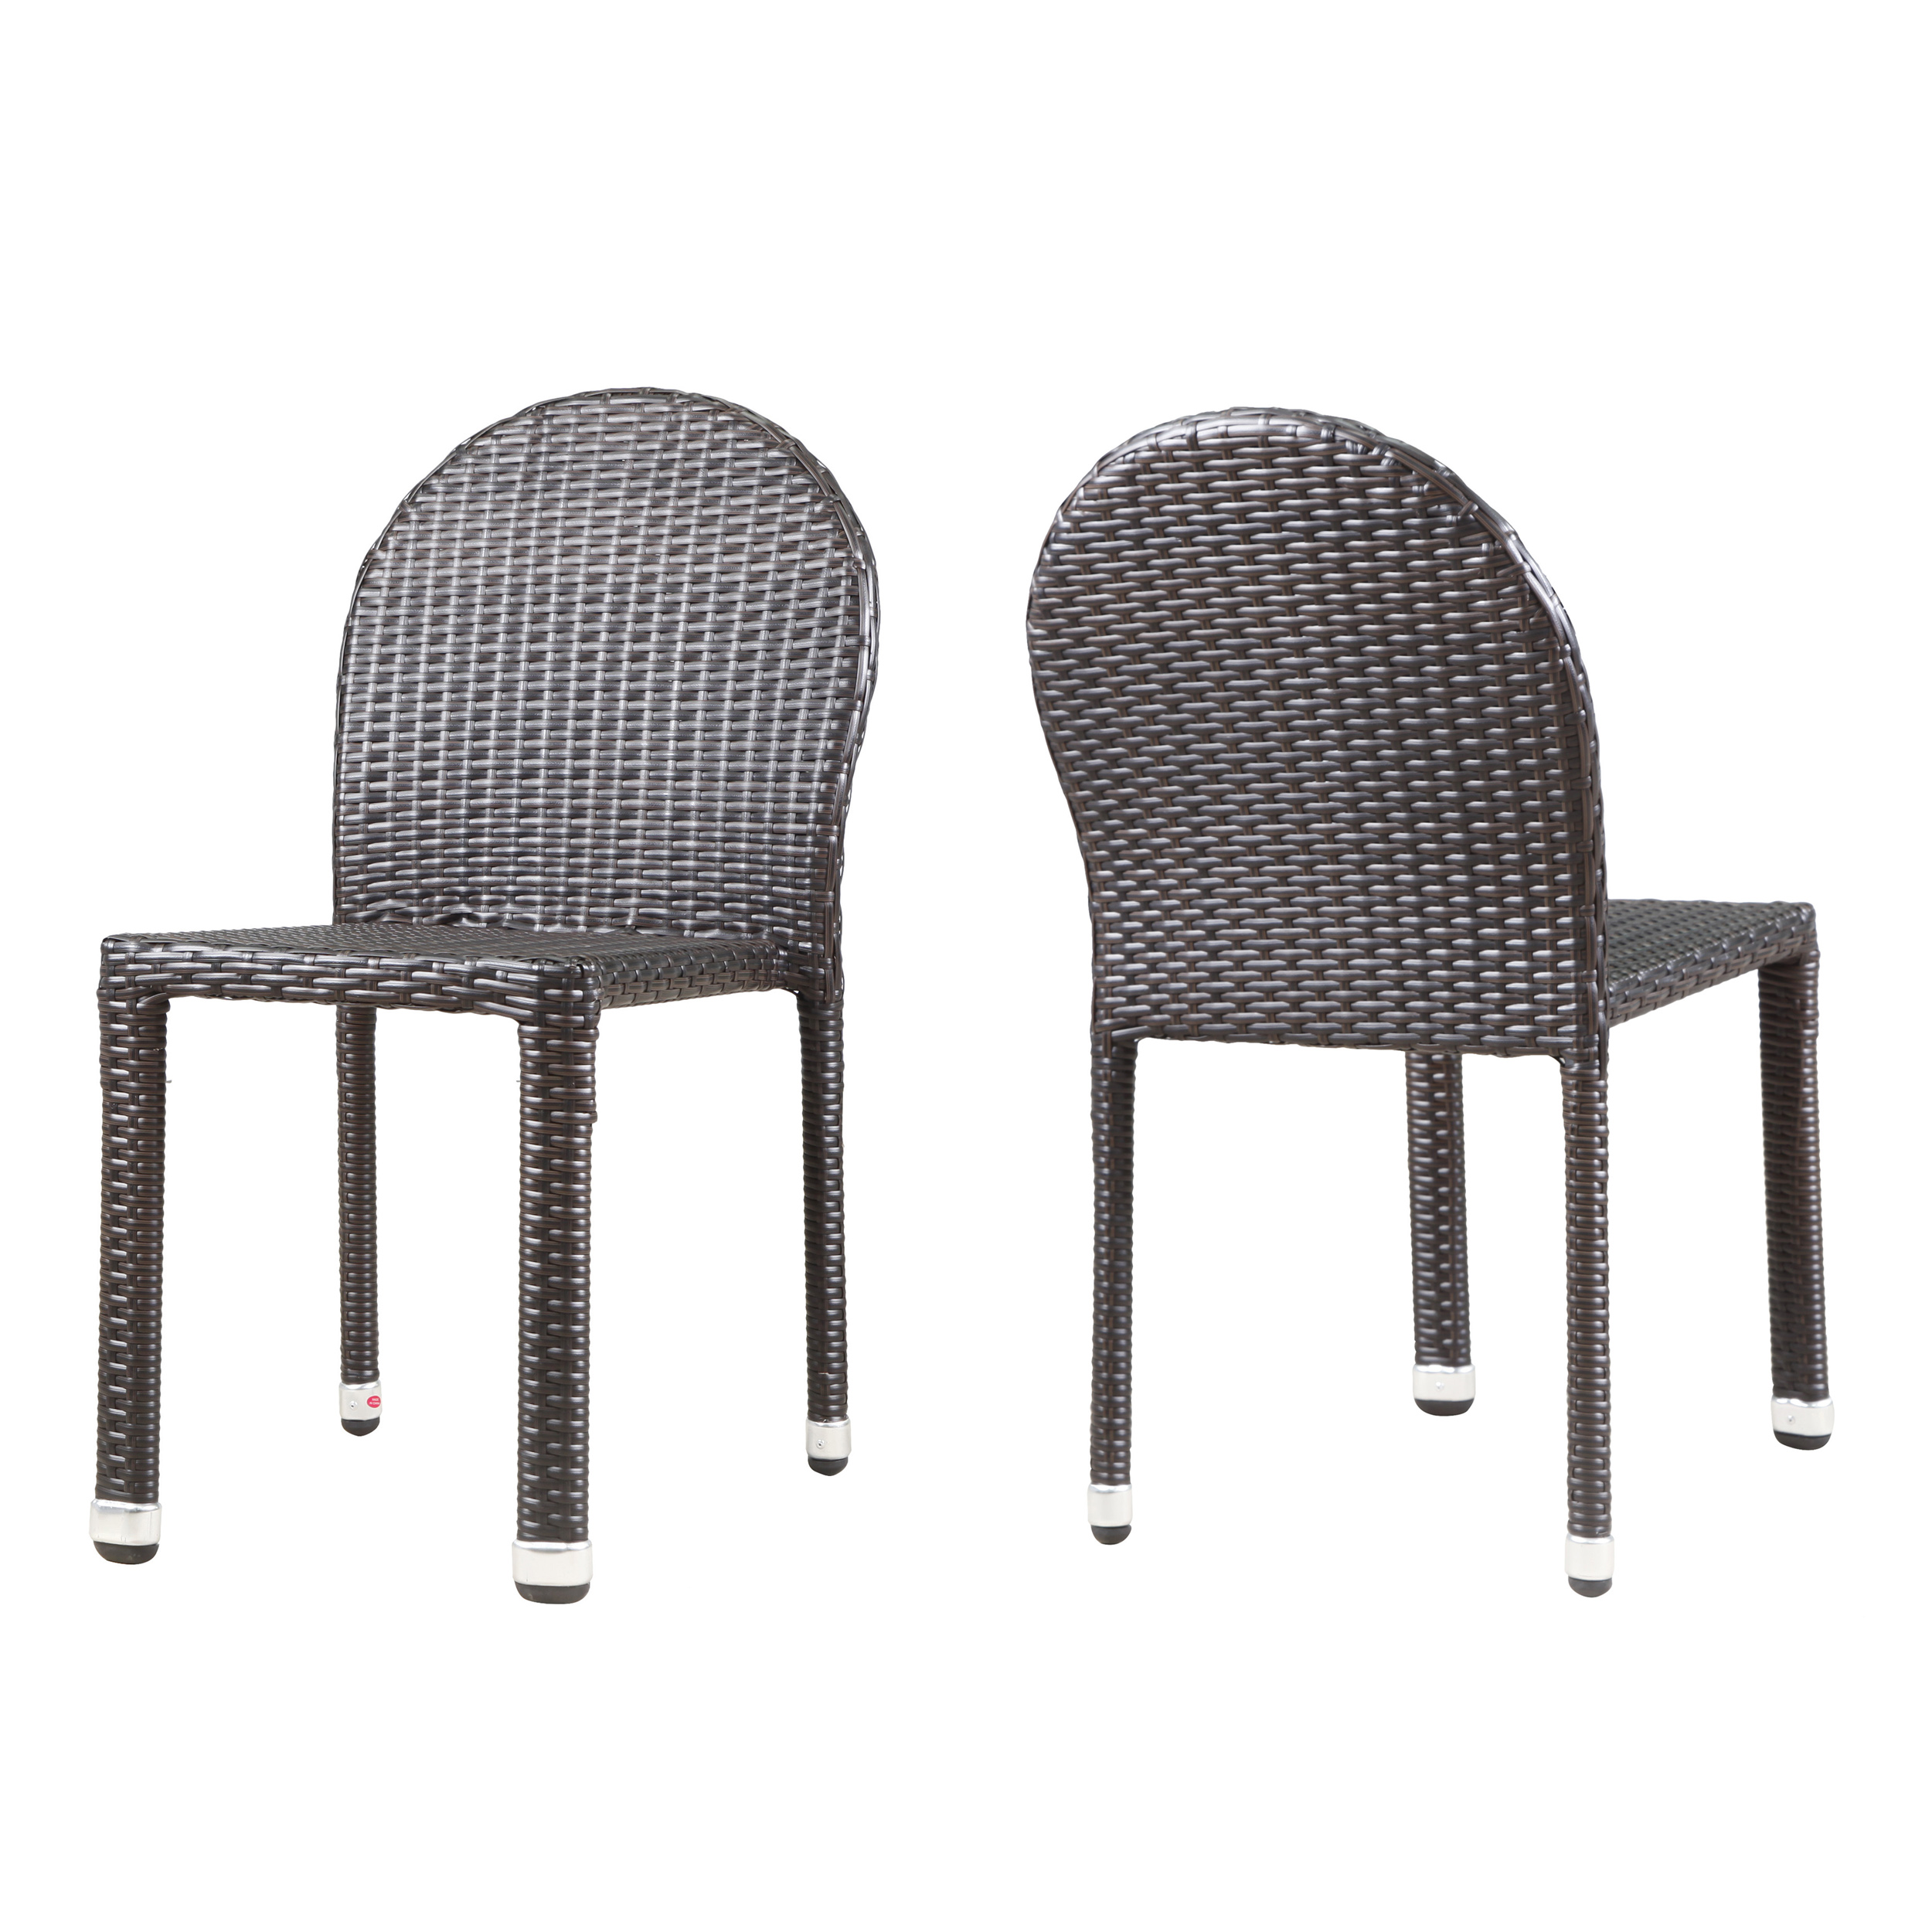 Amallie  Outdoor Wicker Stacking Chairs with Aluminum Frame, Set of 2, Multibrown